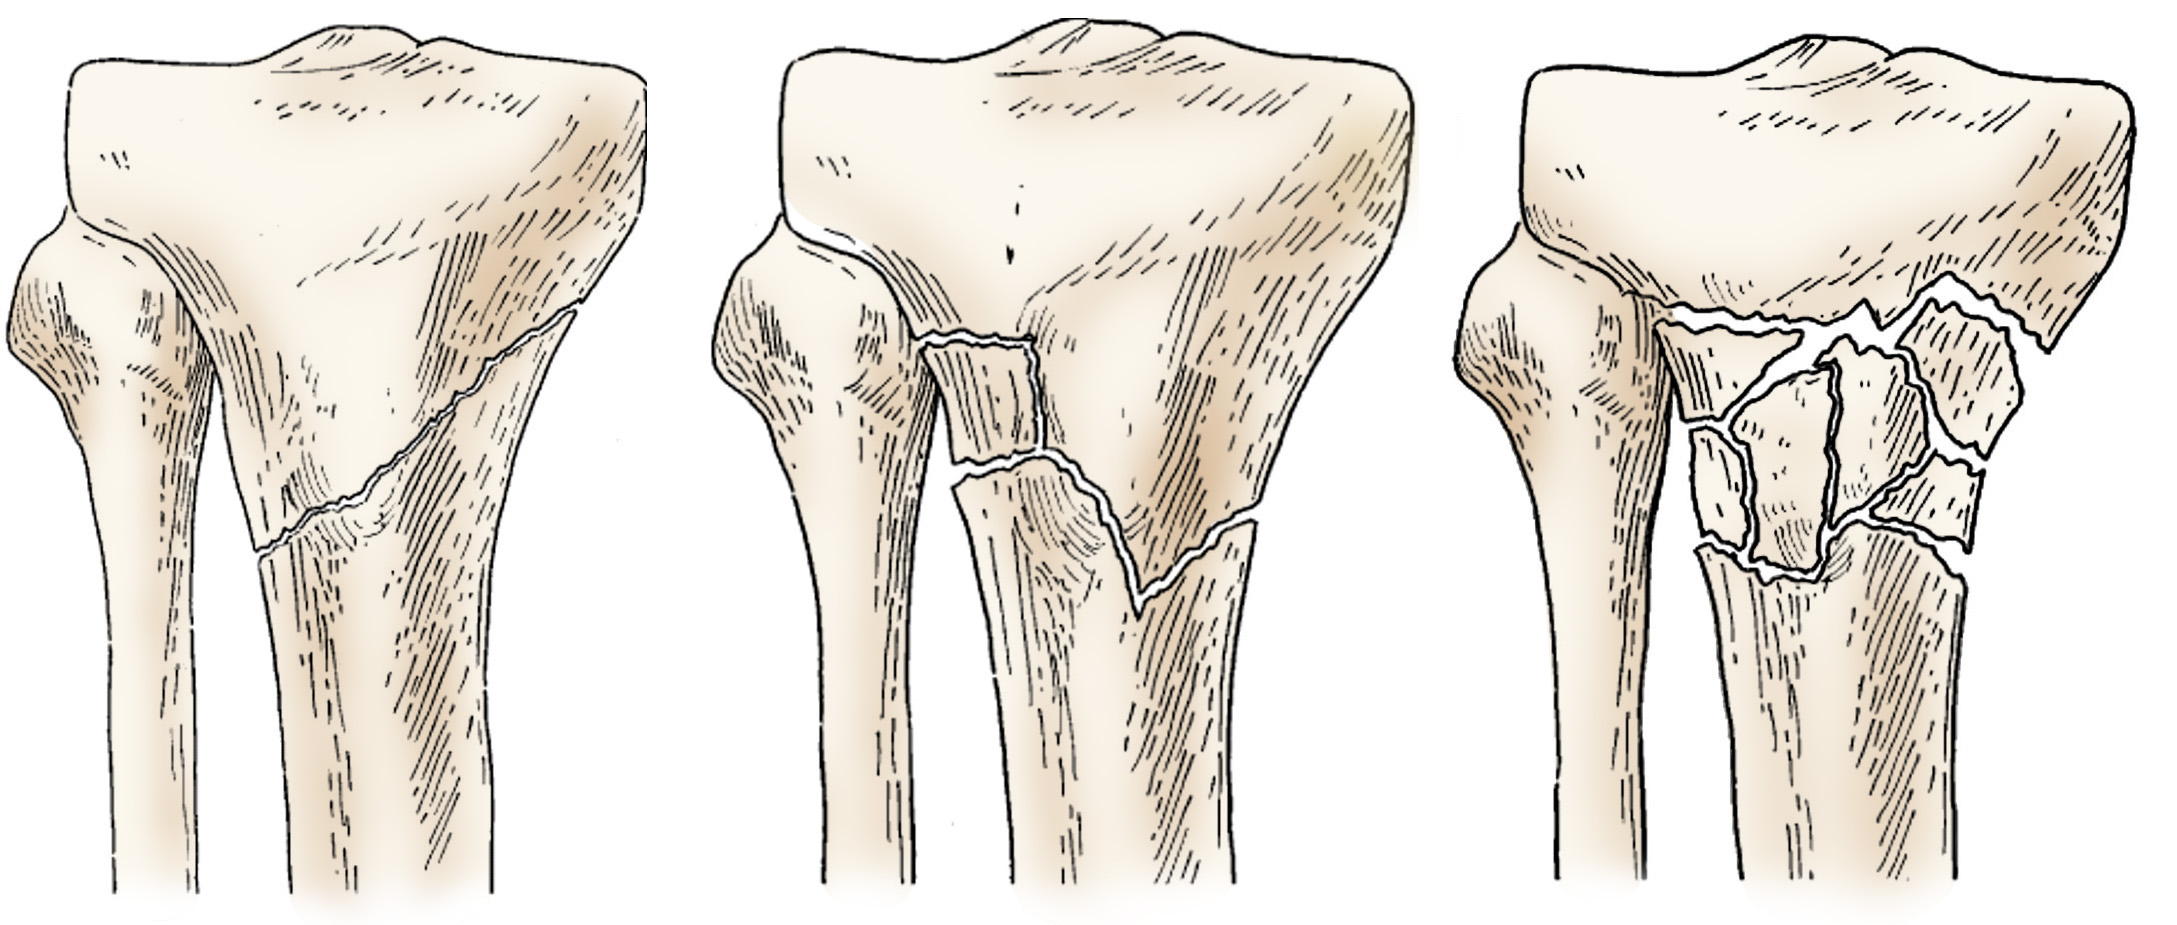 Illustration of different proximal tibia fractures